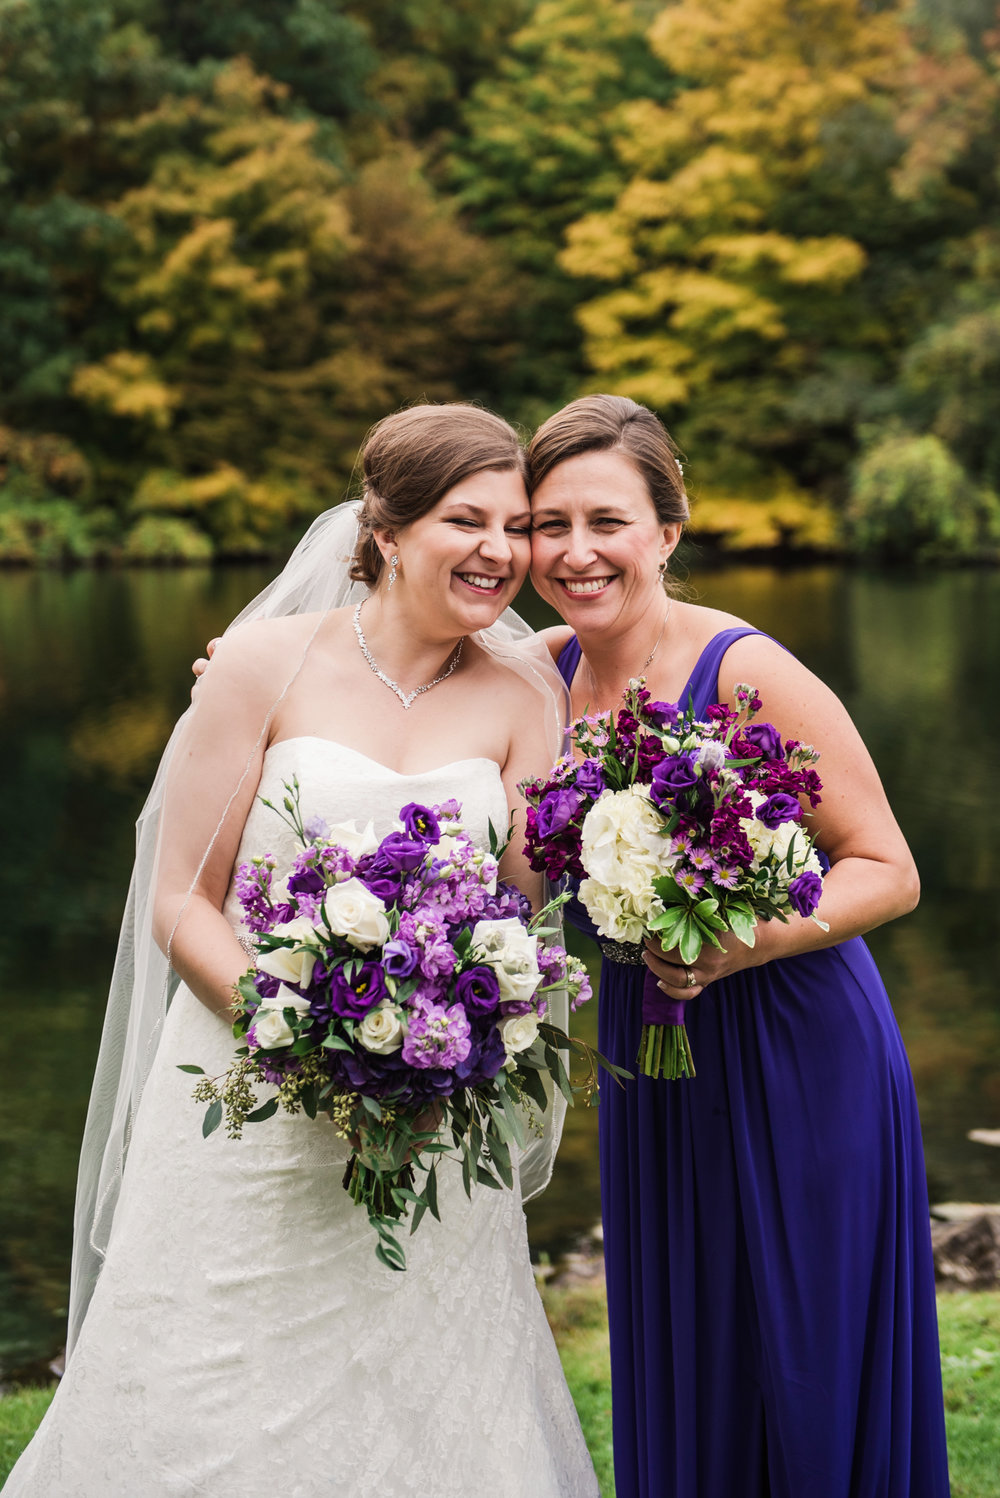 Shadow_Lake_Rochester_Wedding_JILL_STUDIO_Rochester_NY_Photographer_DSC_5603.jpg